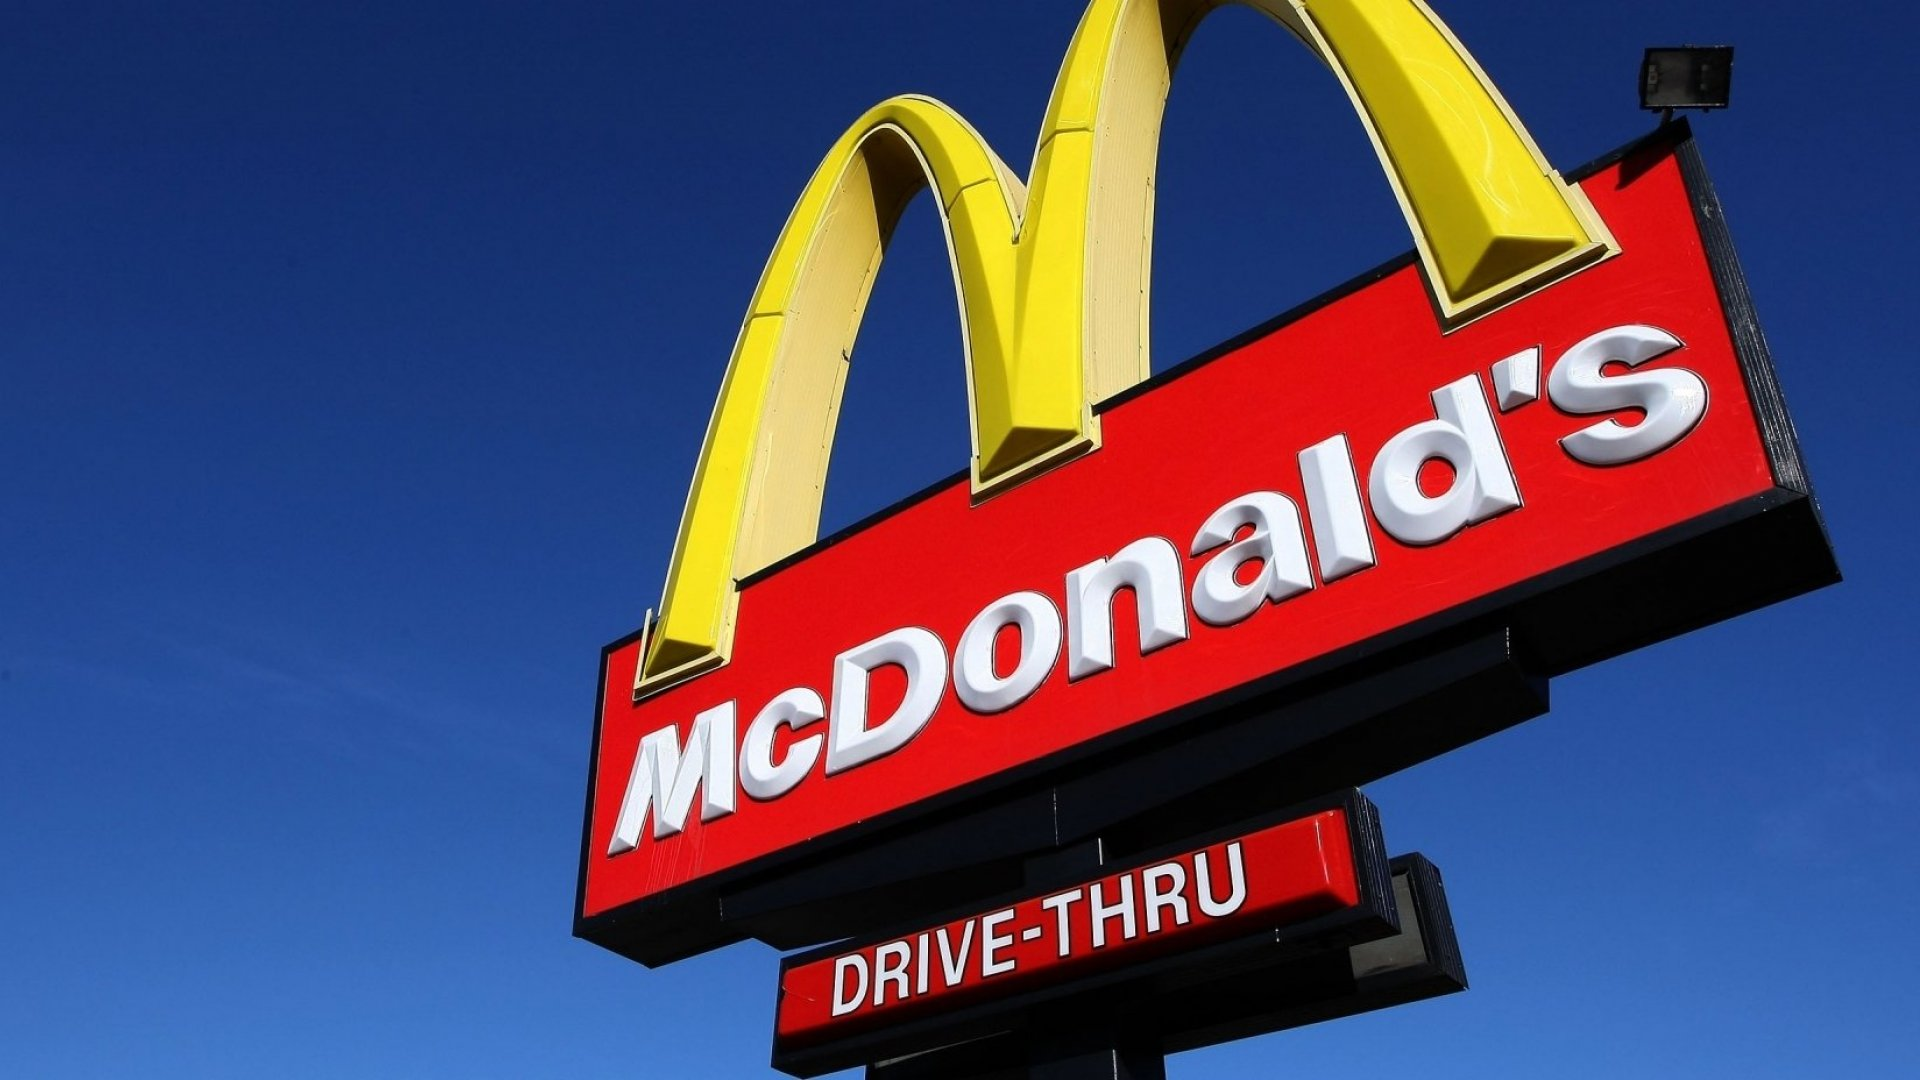 This Guy Hacked a McDonald's Drive-Thru Using Only a Radio (but Later He Went to Prison, so...)